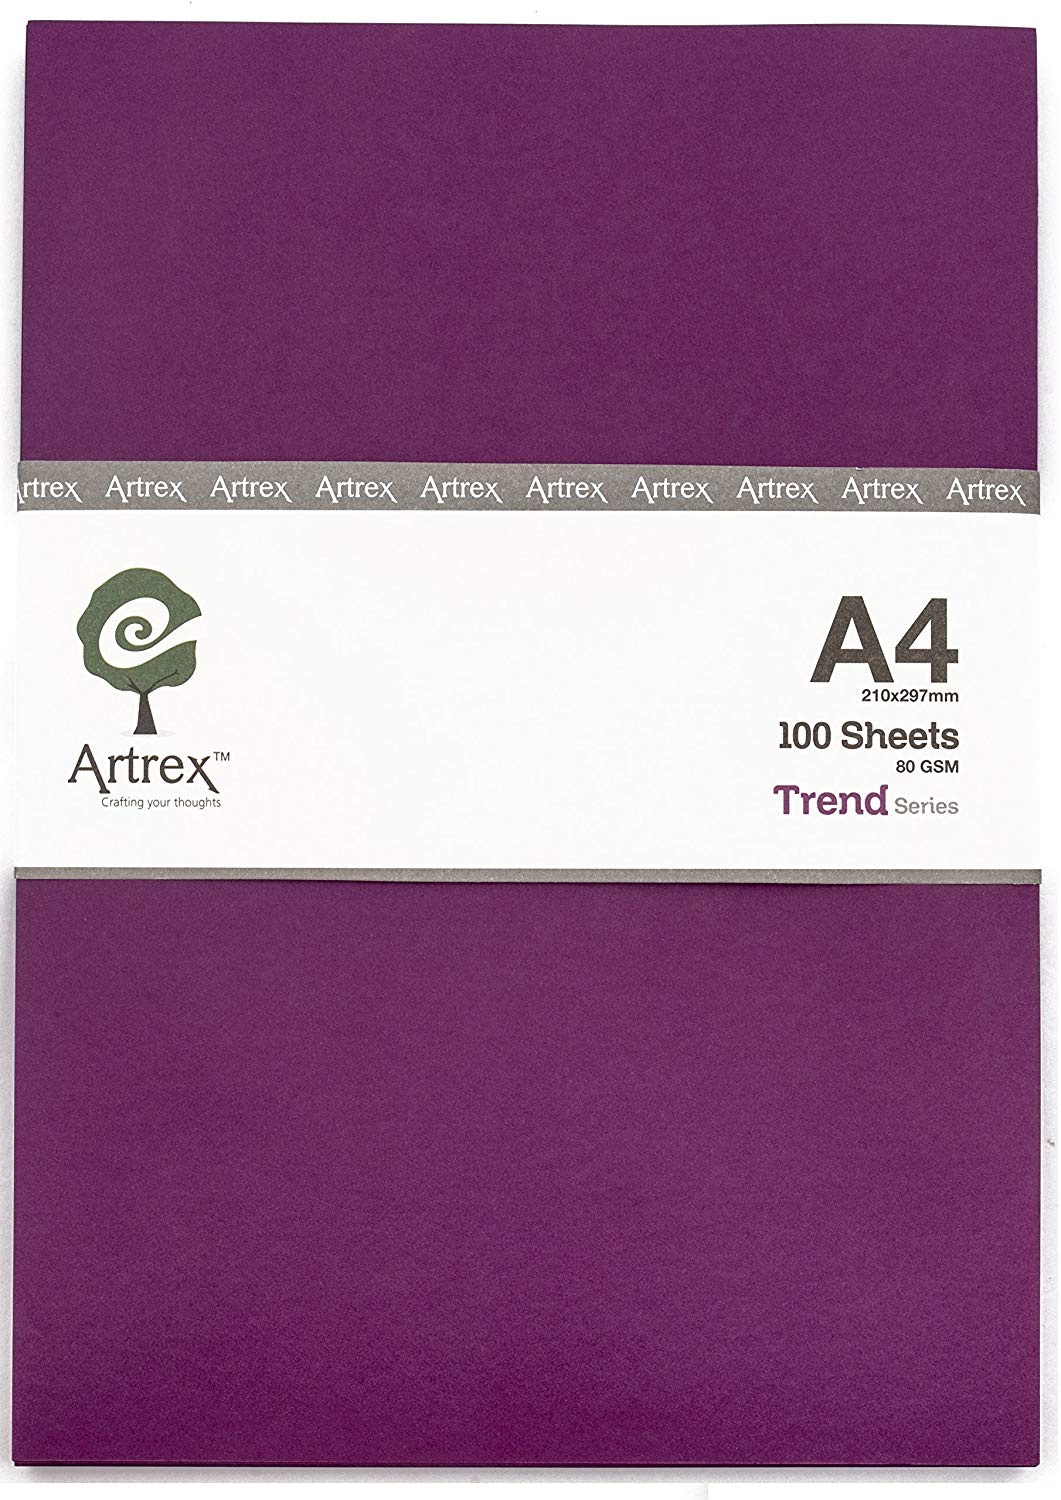 Artrex A4 Color Paper Trend 80 GSM RASBERRY (Pack of 100 Sheets)-0